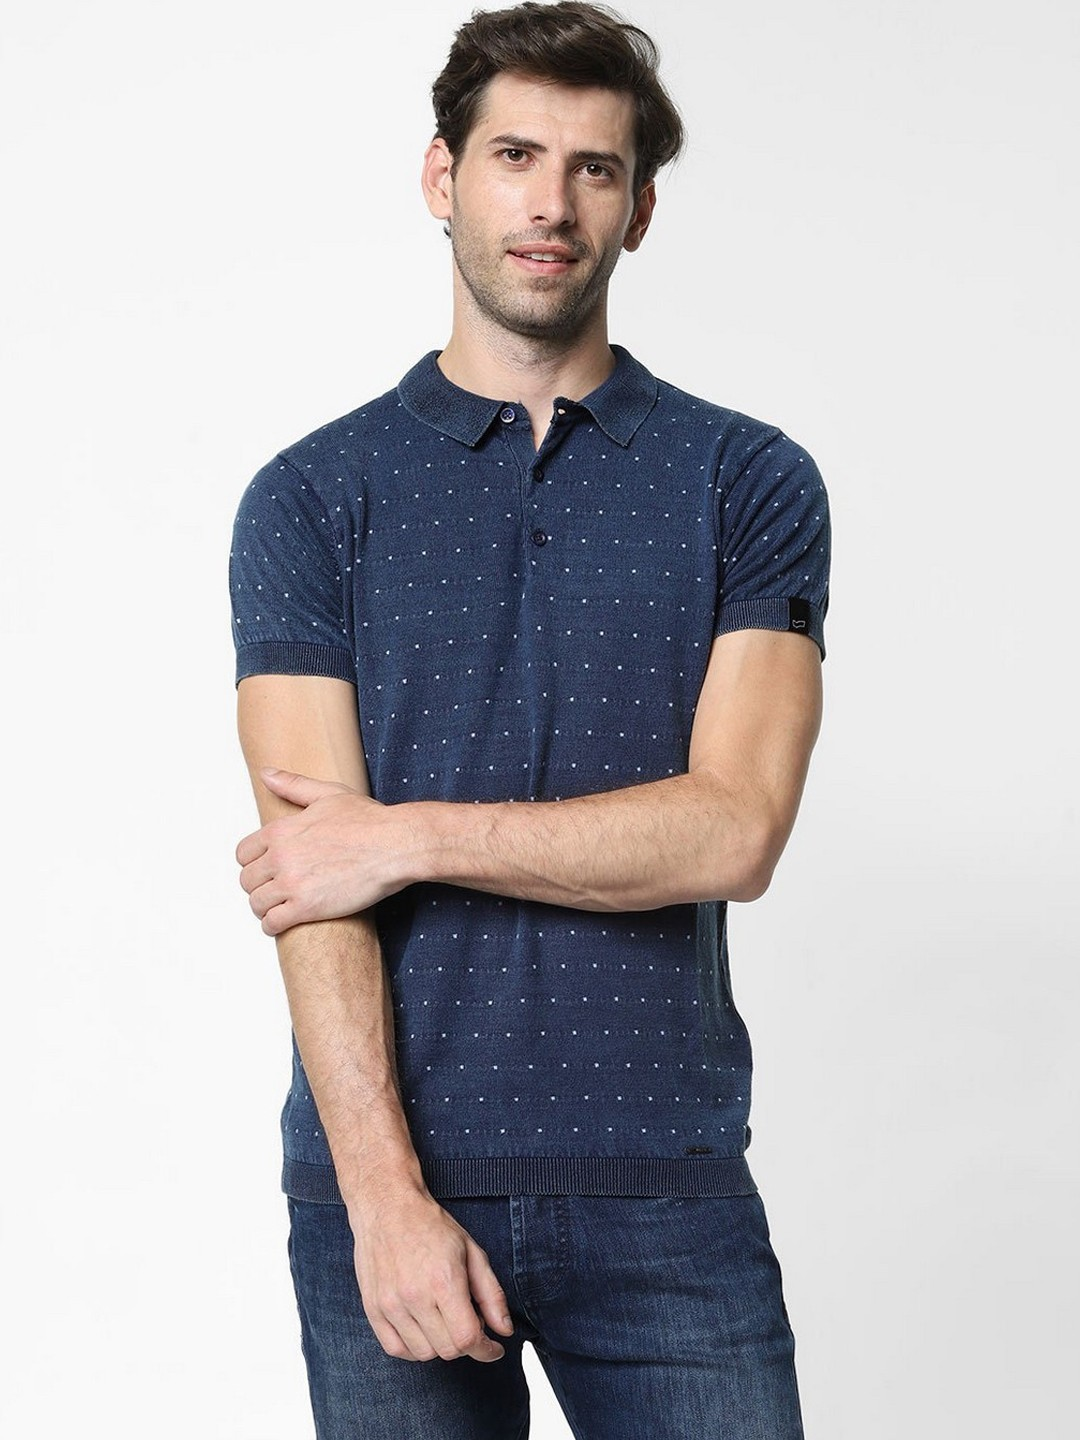 Men's Ryce printed blue polo t-shirt